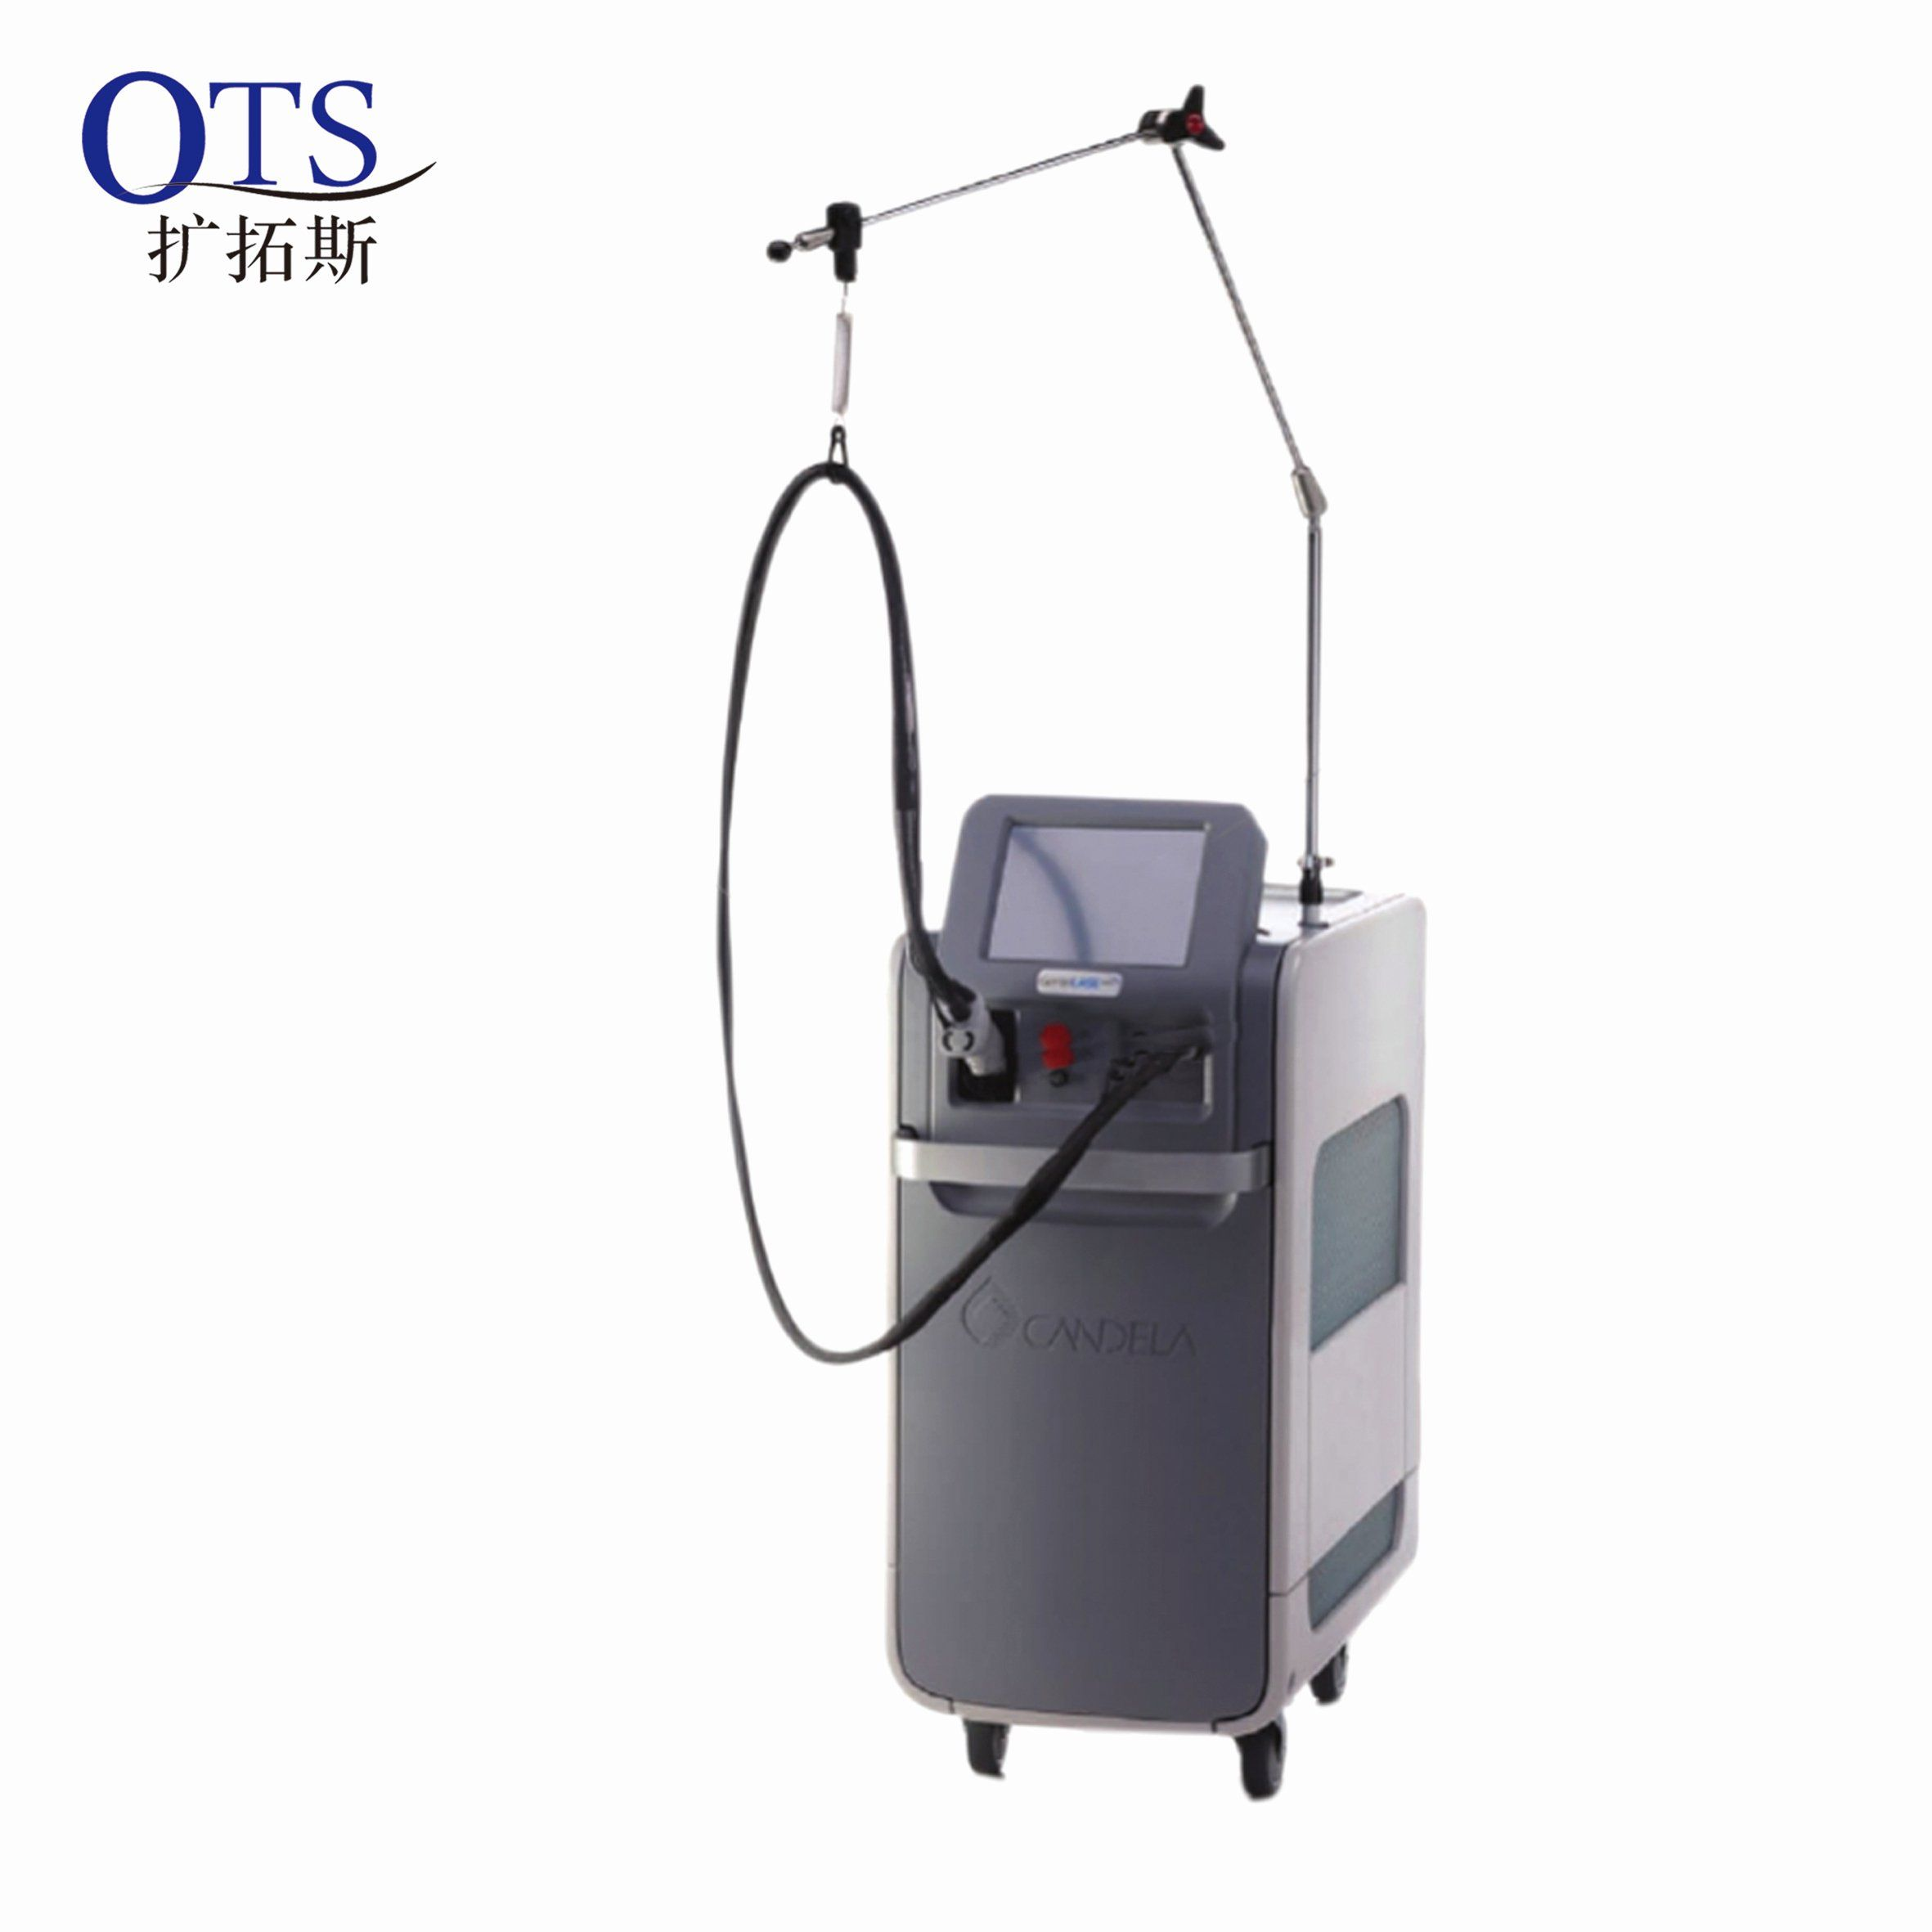 Laser Tattoo Removal Manufacturers In 2020 Laser Tattoo Removal